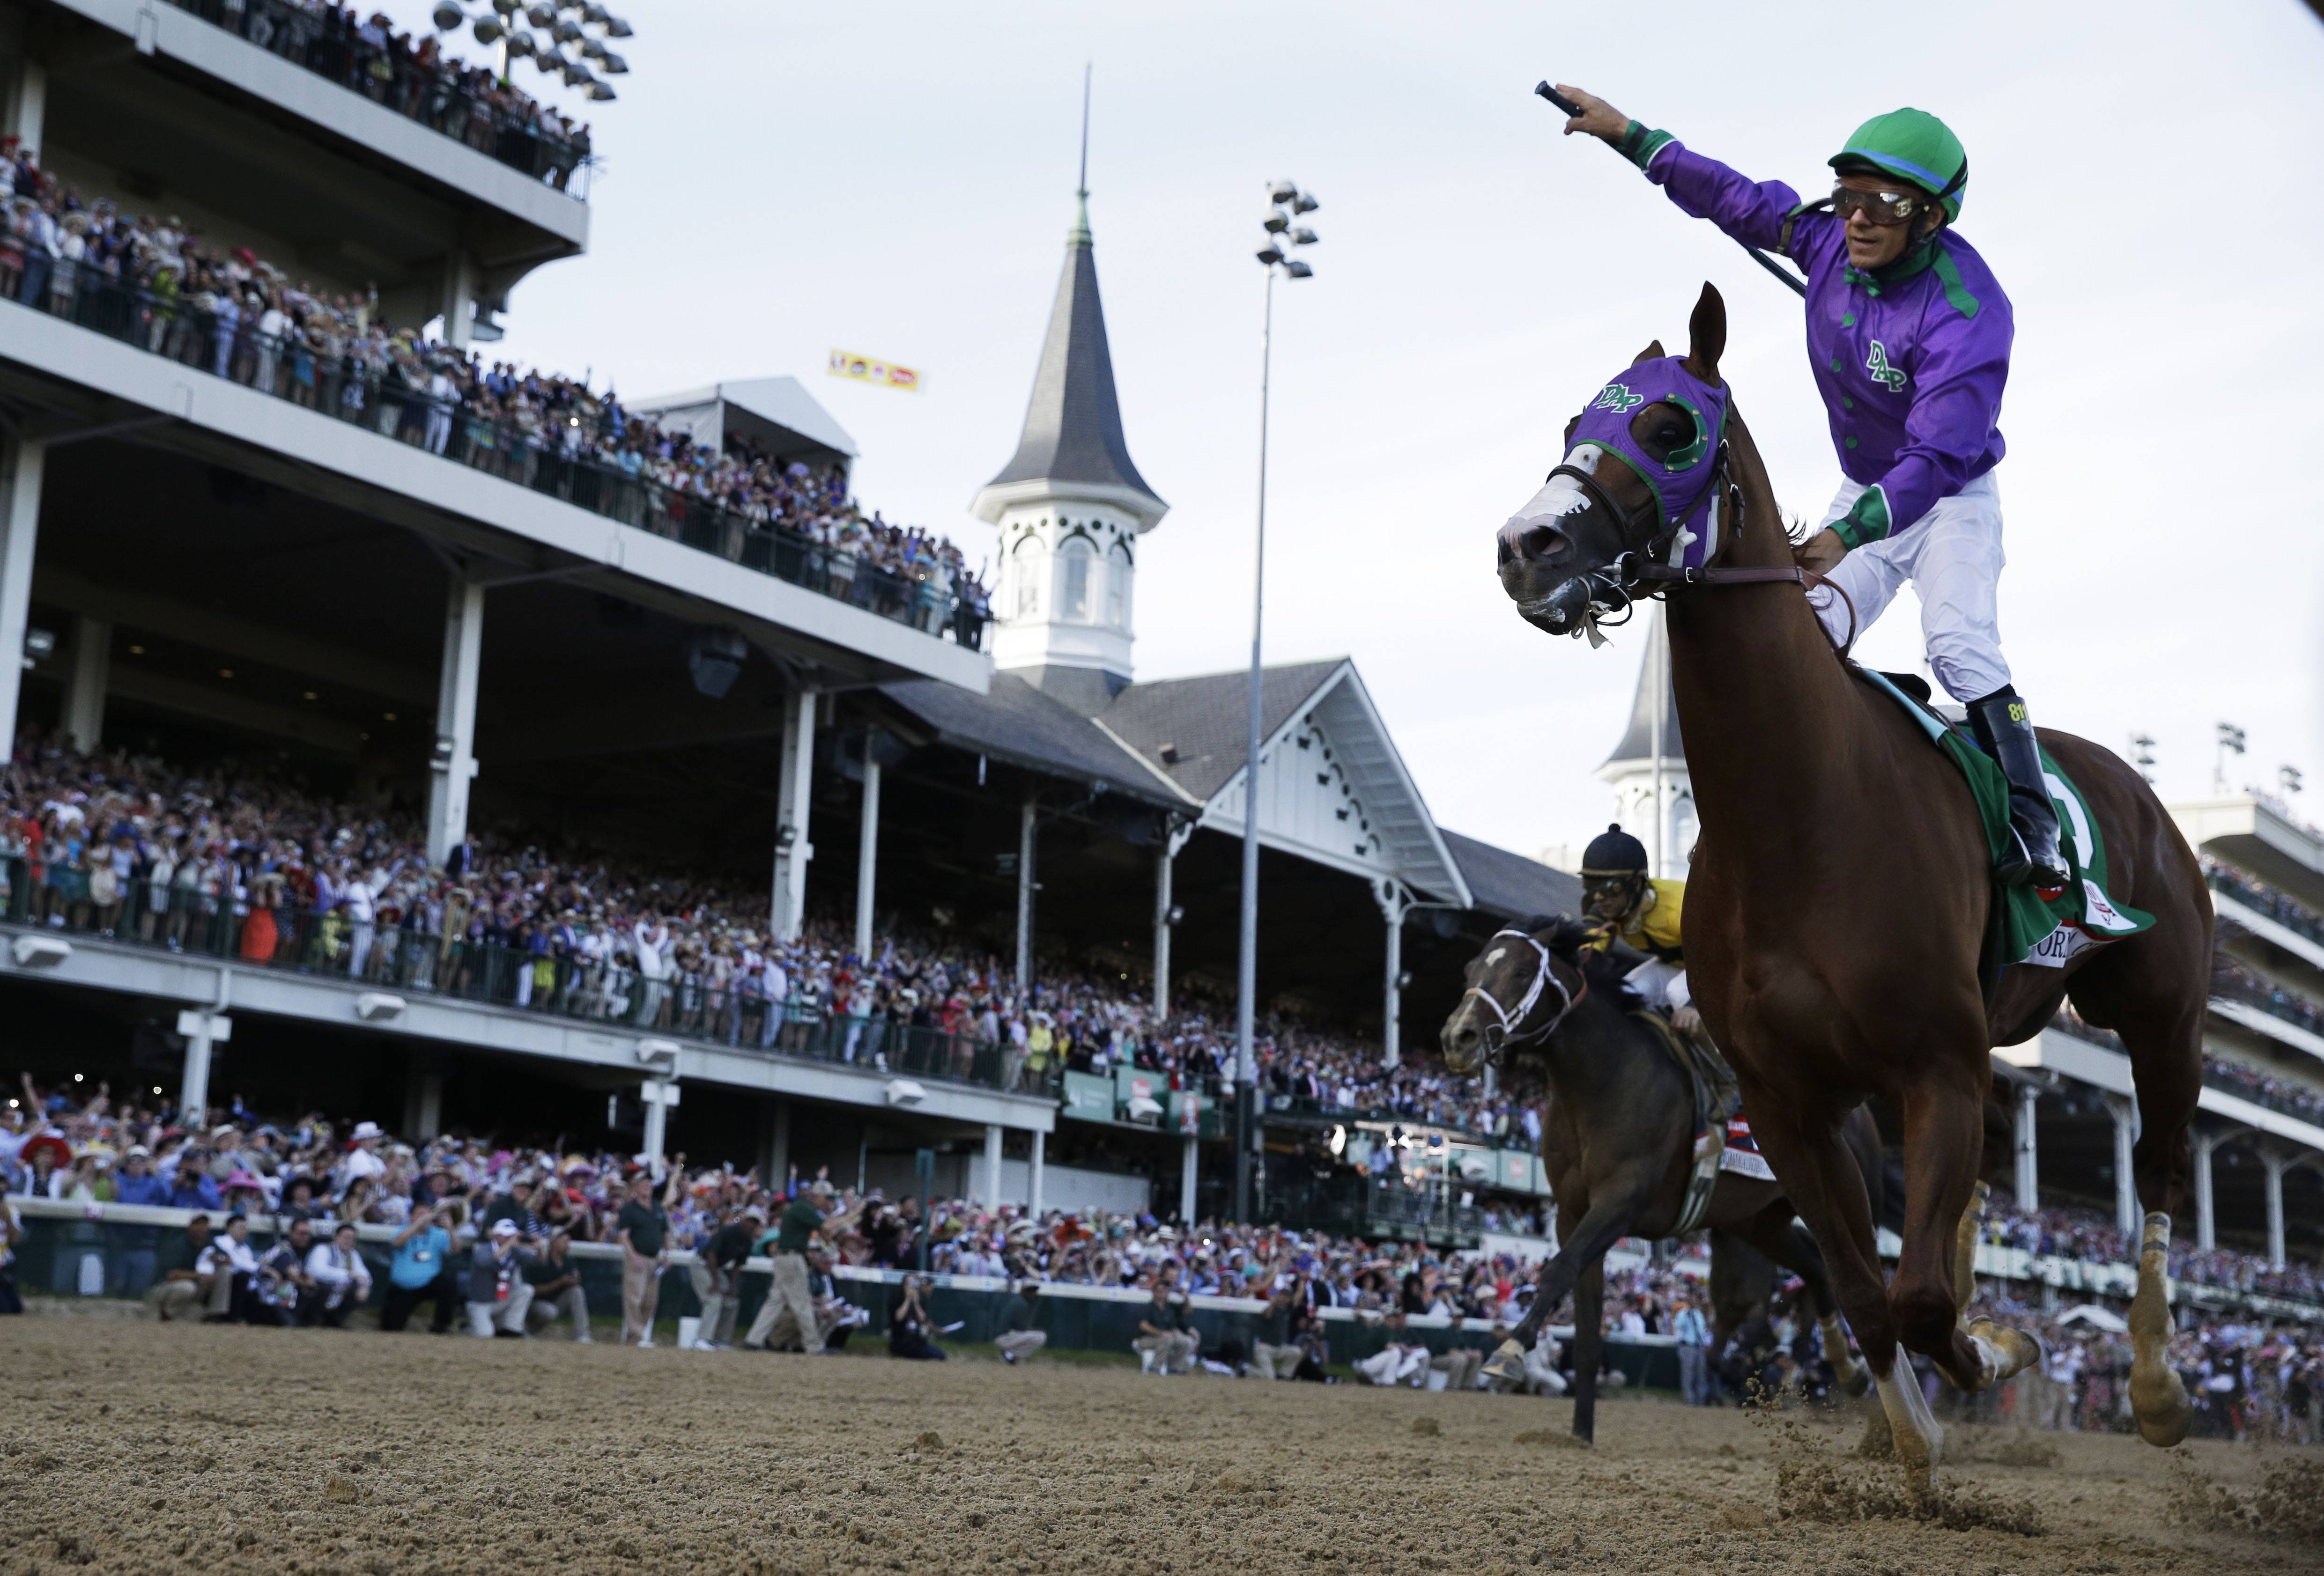 In this May 3, 2014 file photo, Victor Espinoza rides California Chrome to victory during the 140th running of the Kentucky Derby horse race at Churchill Downs in Louisville, Ky. California Chrome's bid to become racing's first Triple Crown winner in 36 years isn't scaring away the competition.